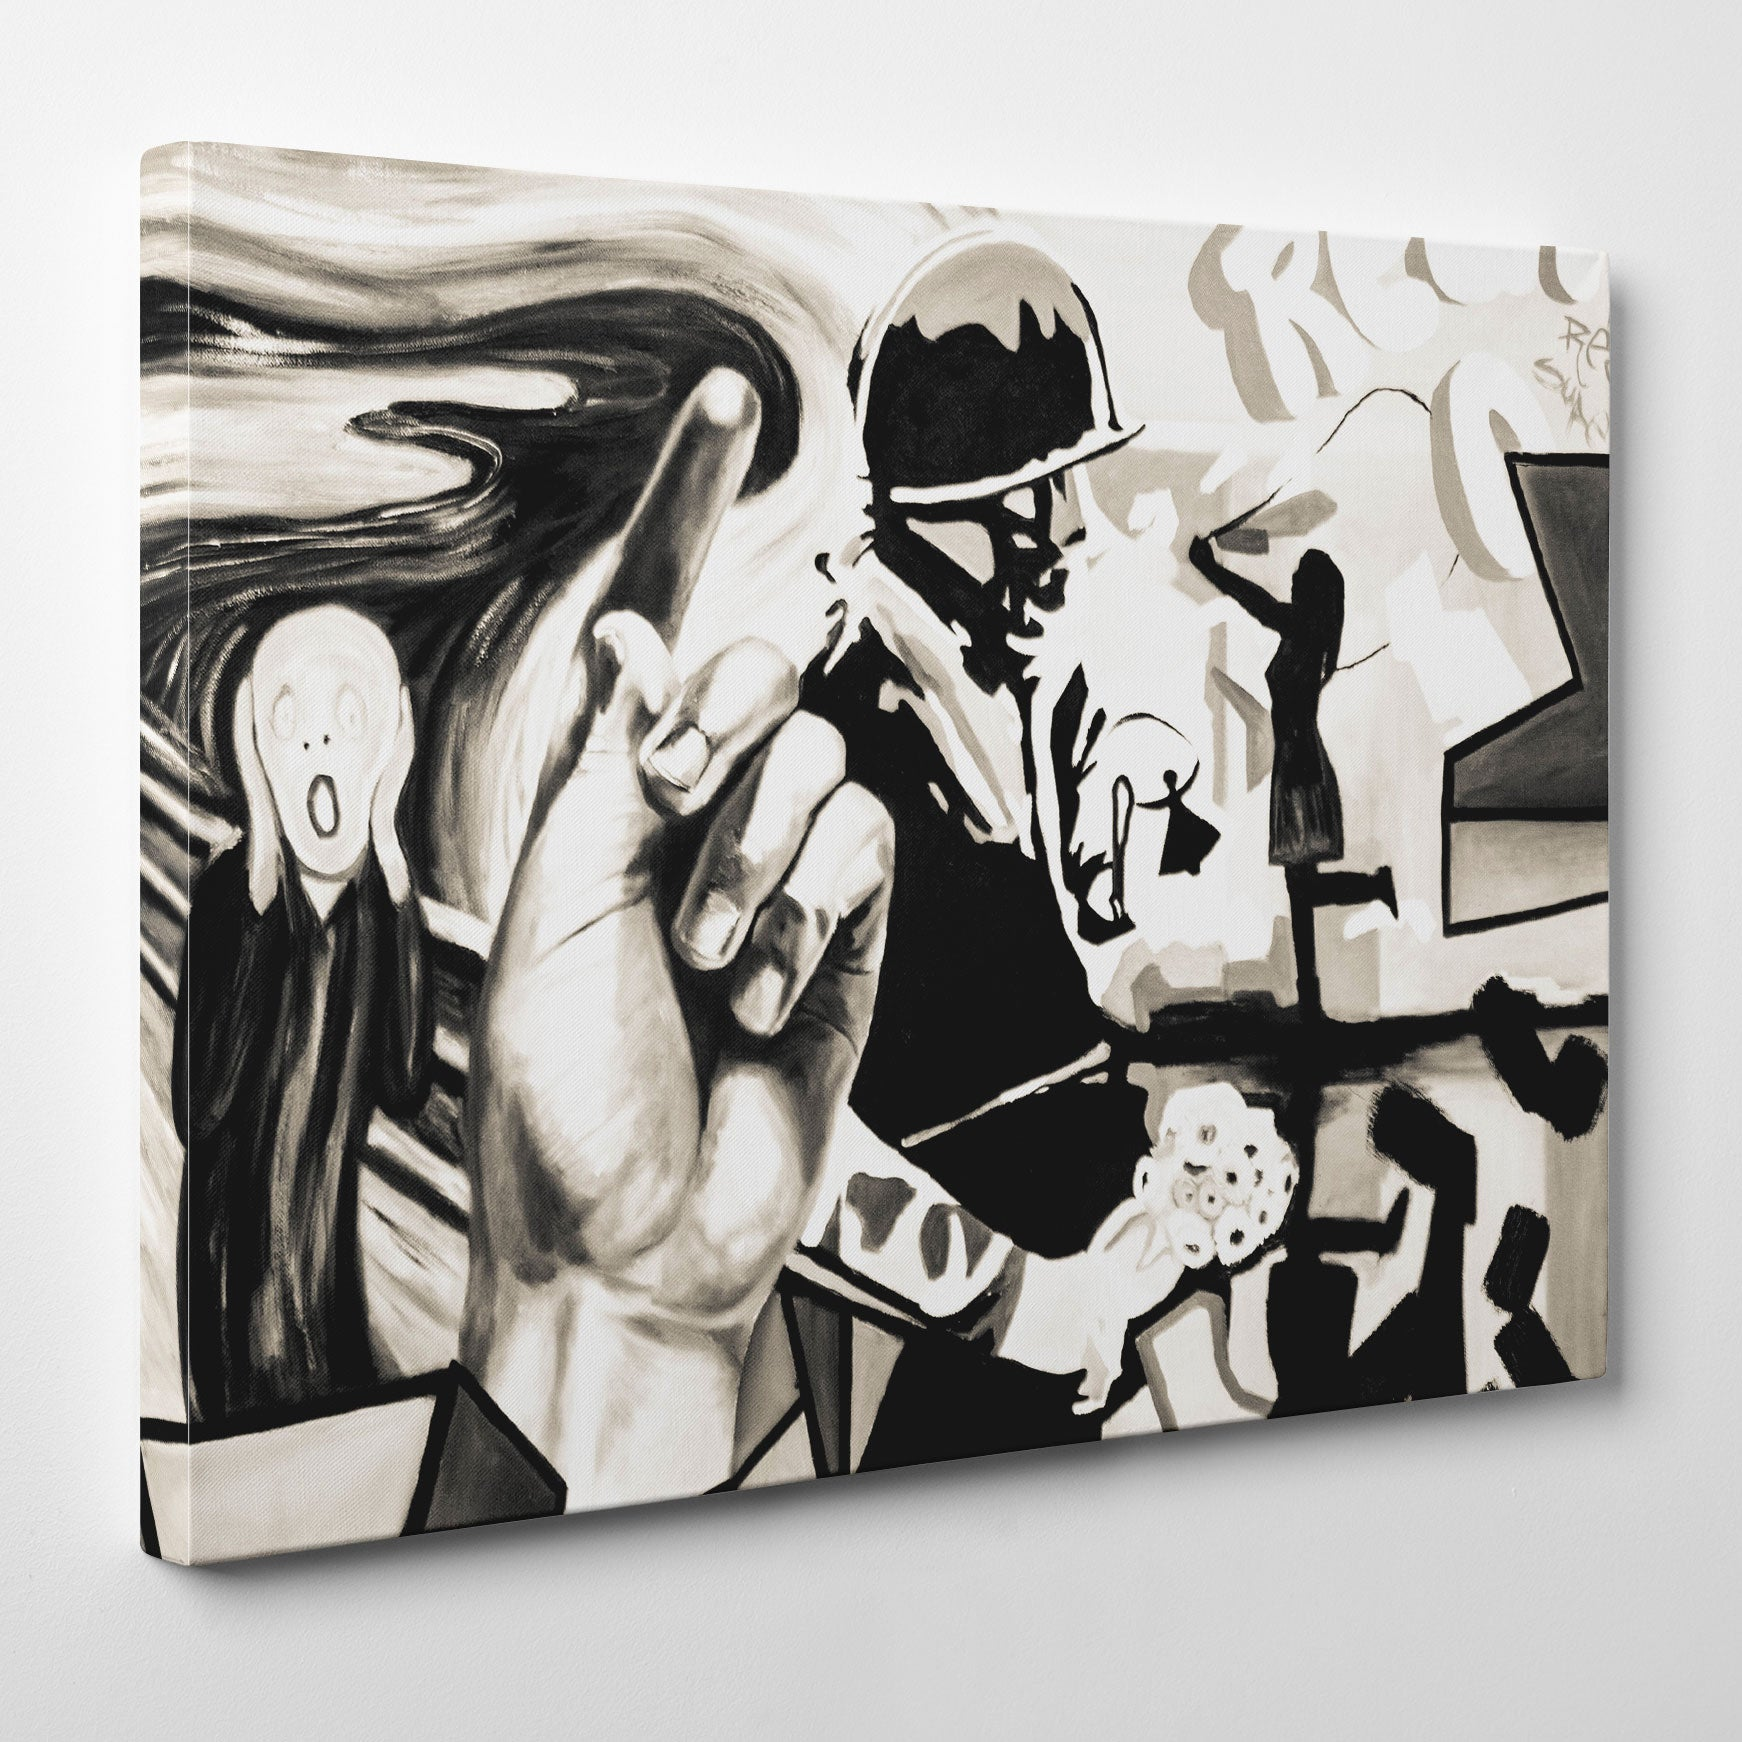 Street art style canvas print of a black and white soldier painting, with arts mixture - side view